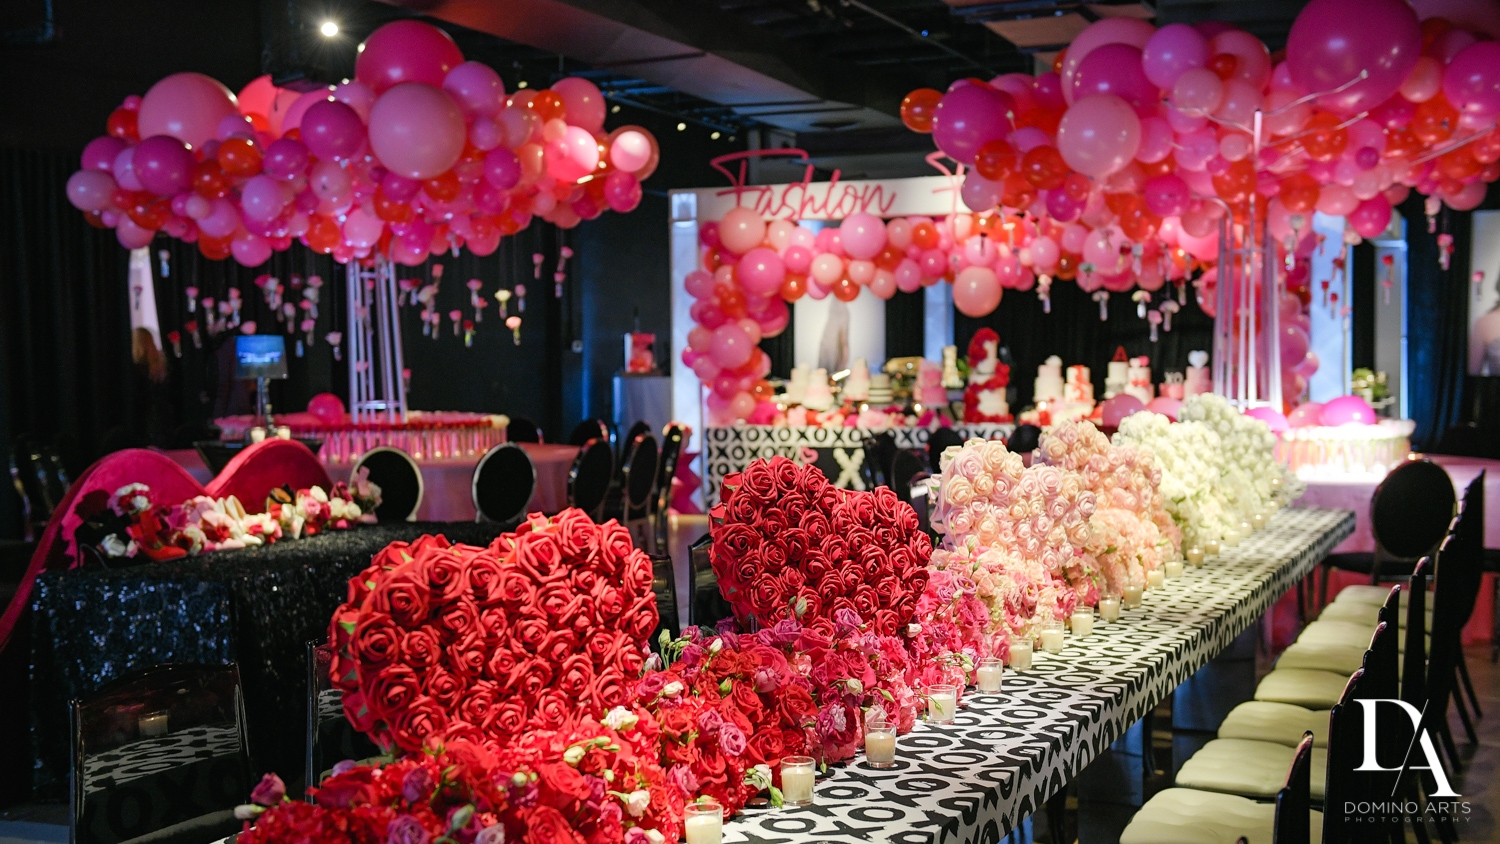 huge flower decor at Fashion Theme Bat Mitzvah at Gallery of Amazing Things by Domino Arts Photography